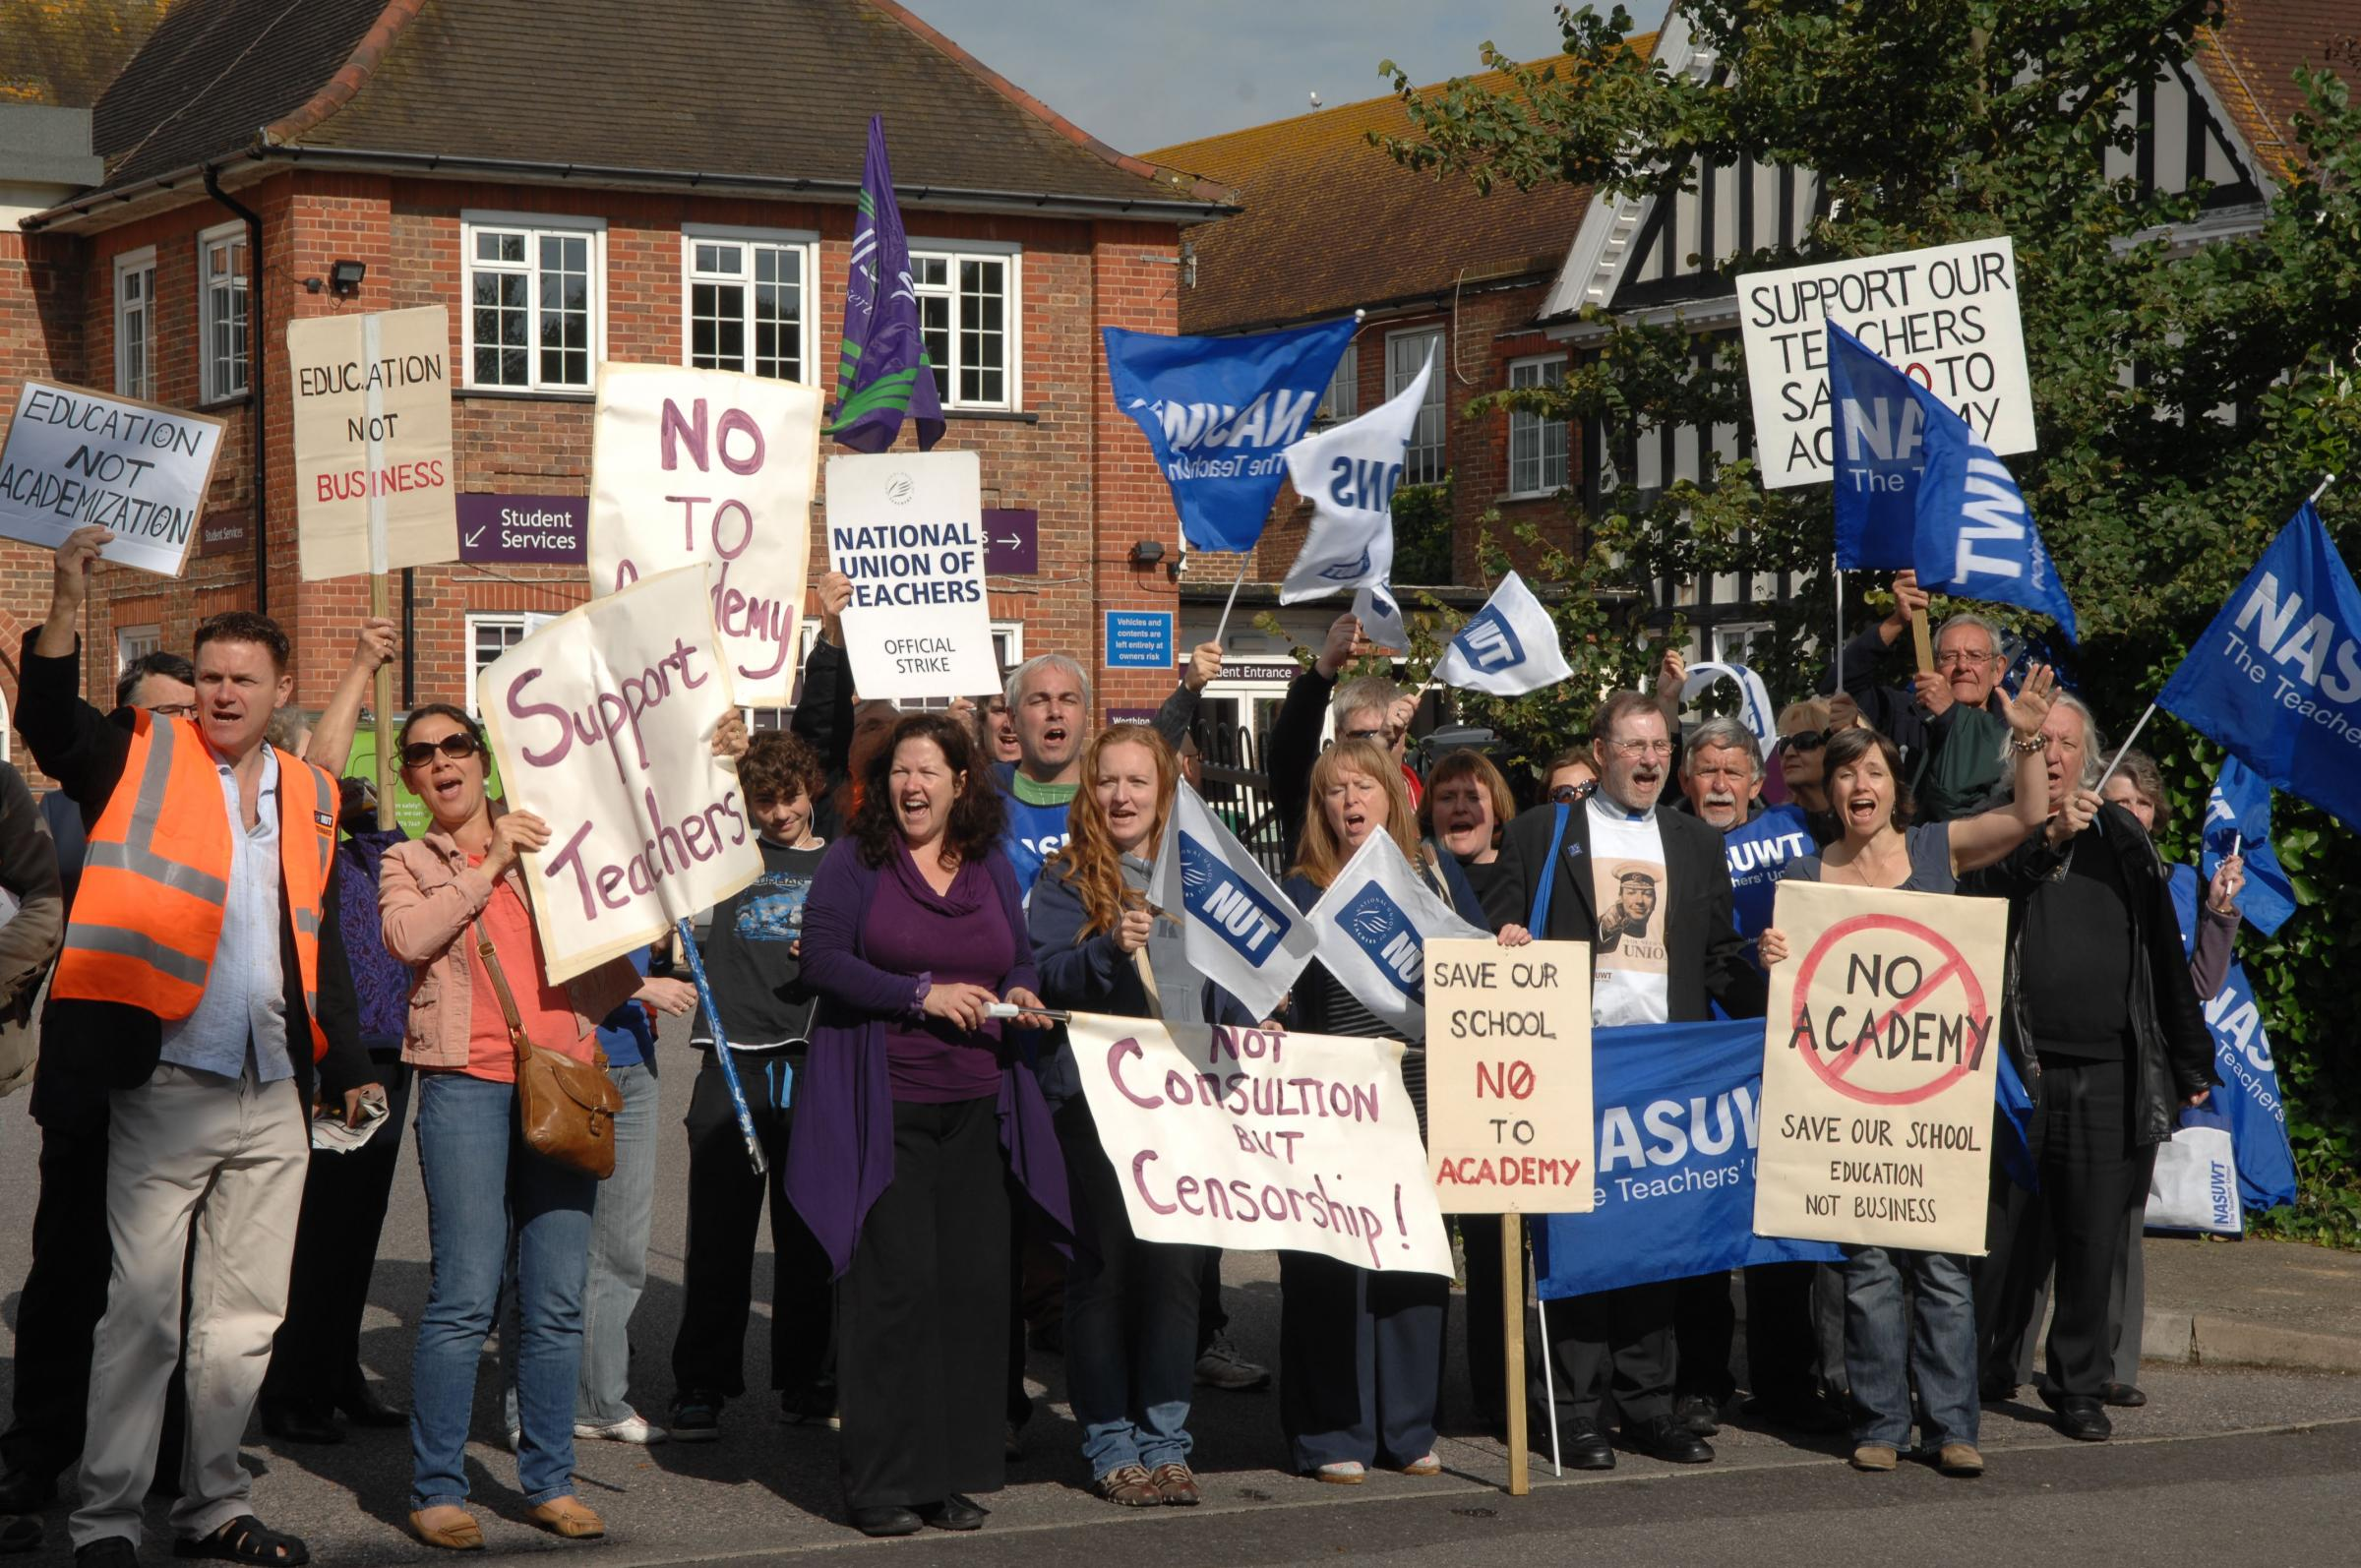 Teachers and unions picket the entrance to Worthing High School to protest against plans for conversion to an academy